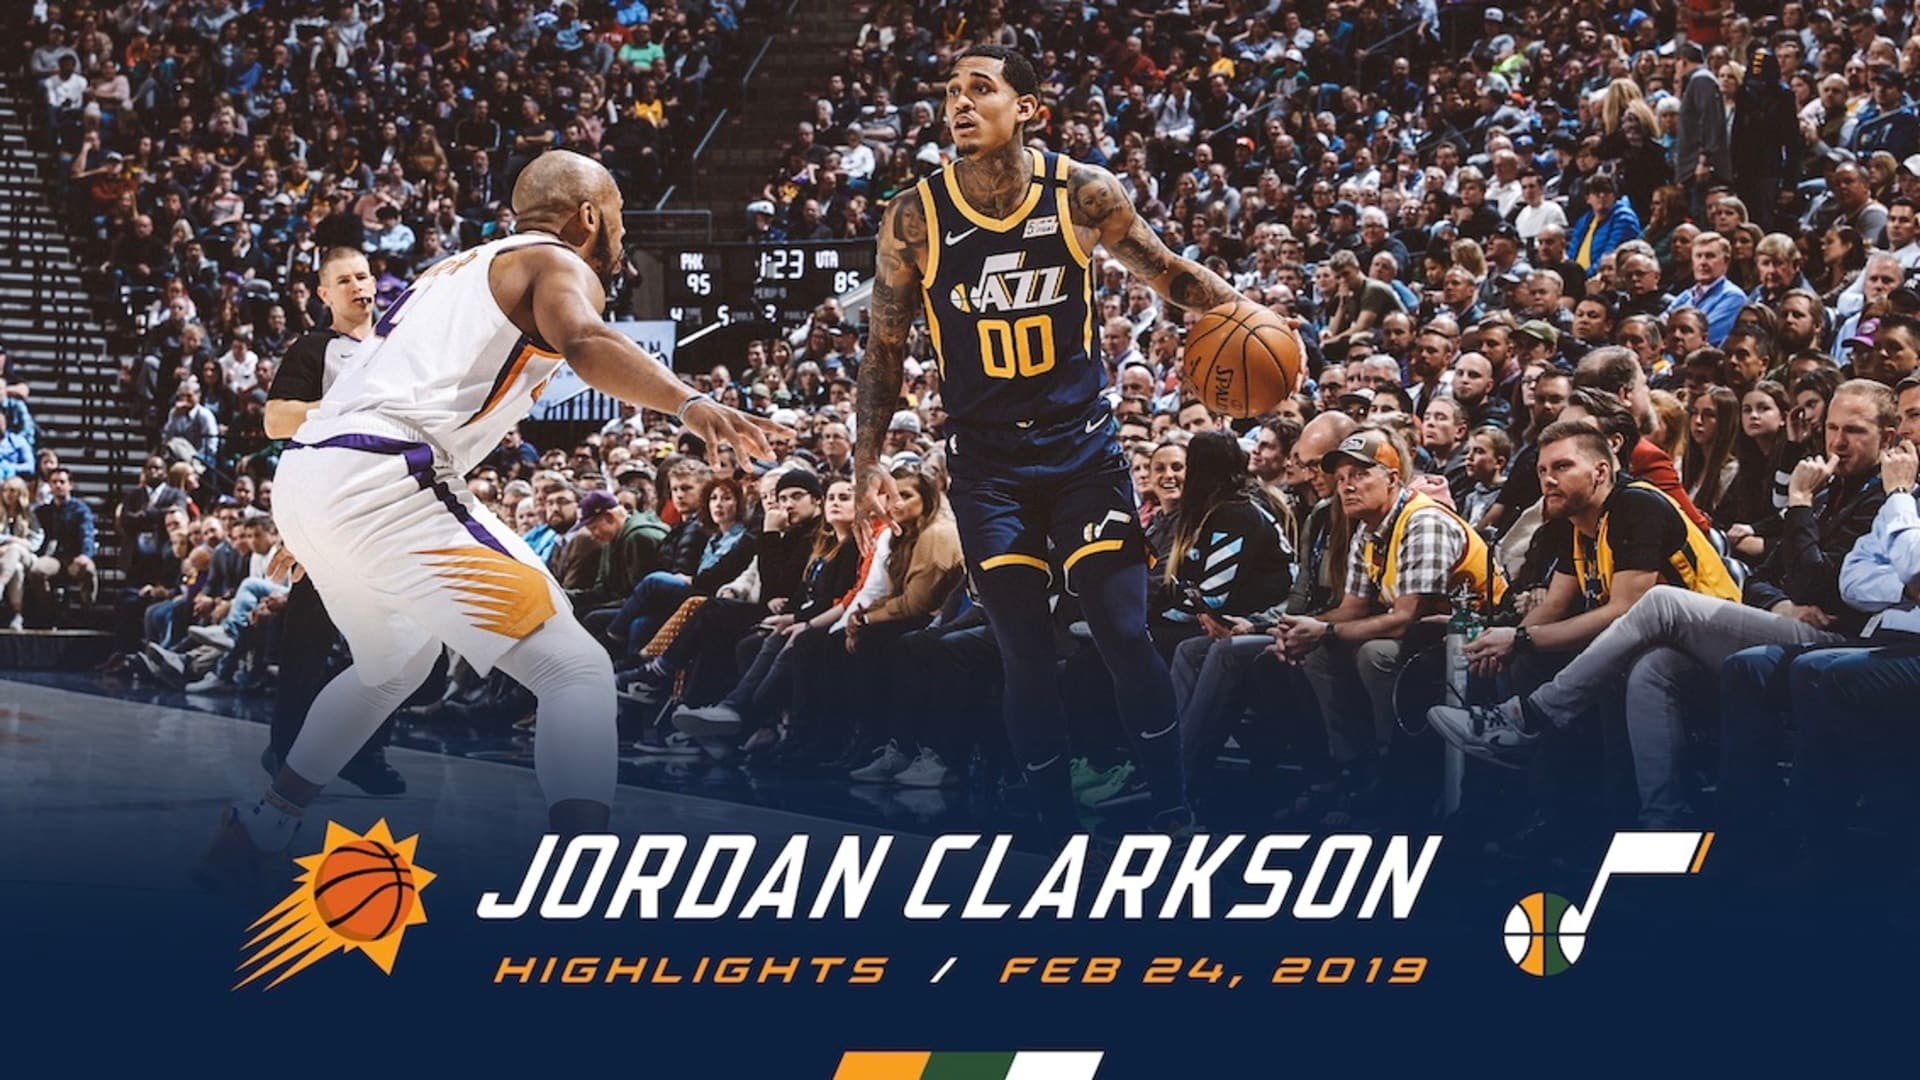 Highlights: Jordan Clarkson — 14 points, 2 rebounds